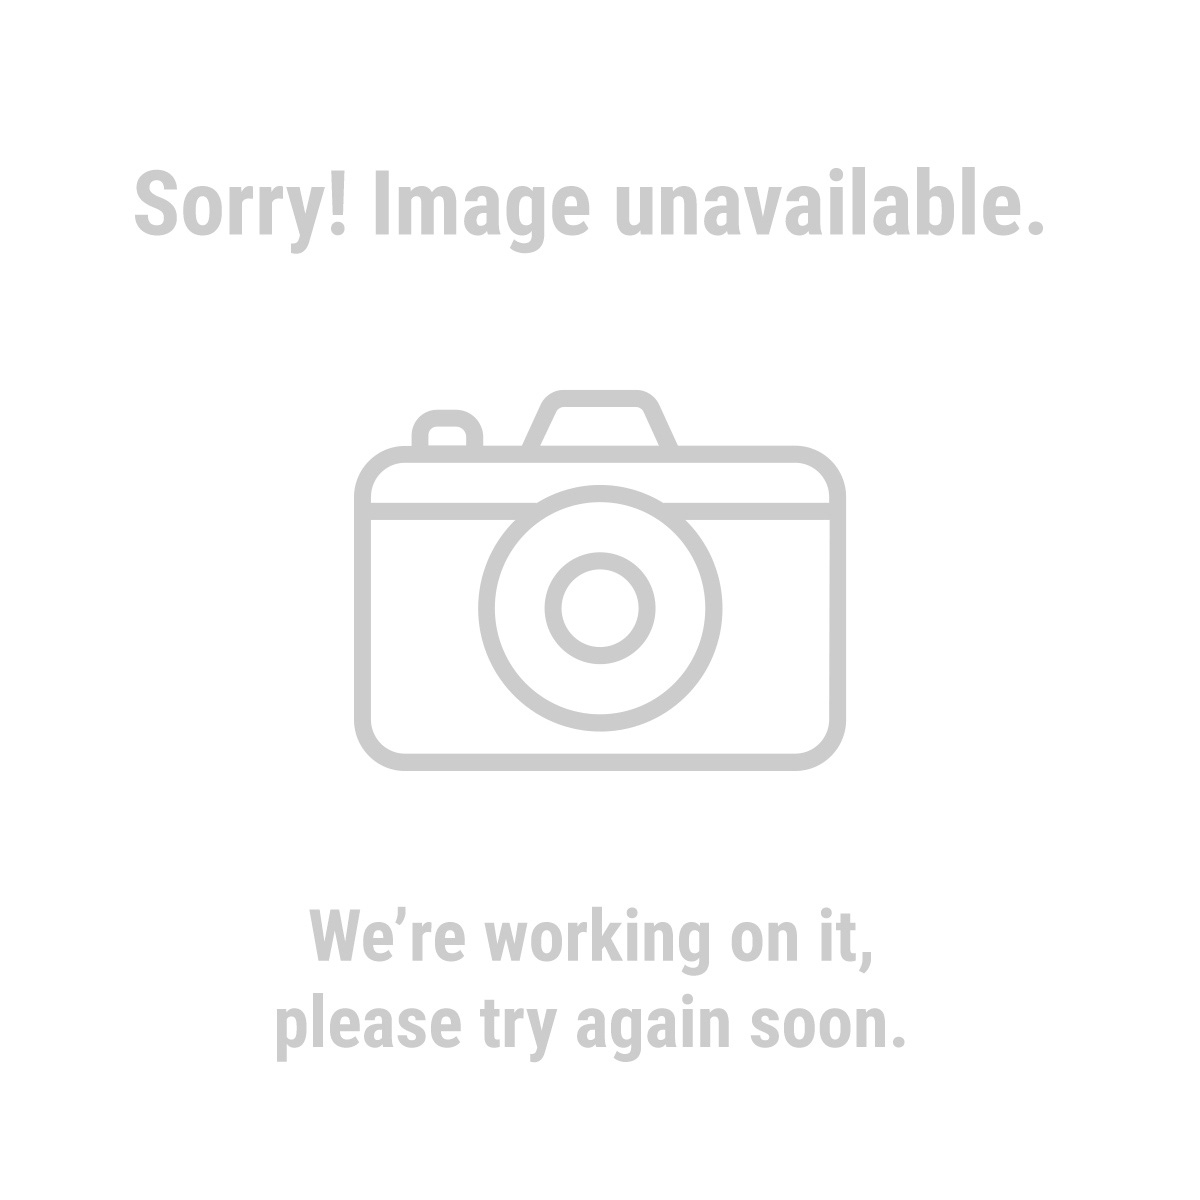 "Haul-Master 97214 3-Point Quick Hitch - 27-3/16"" Clearance"